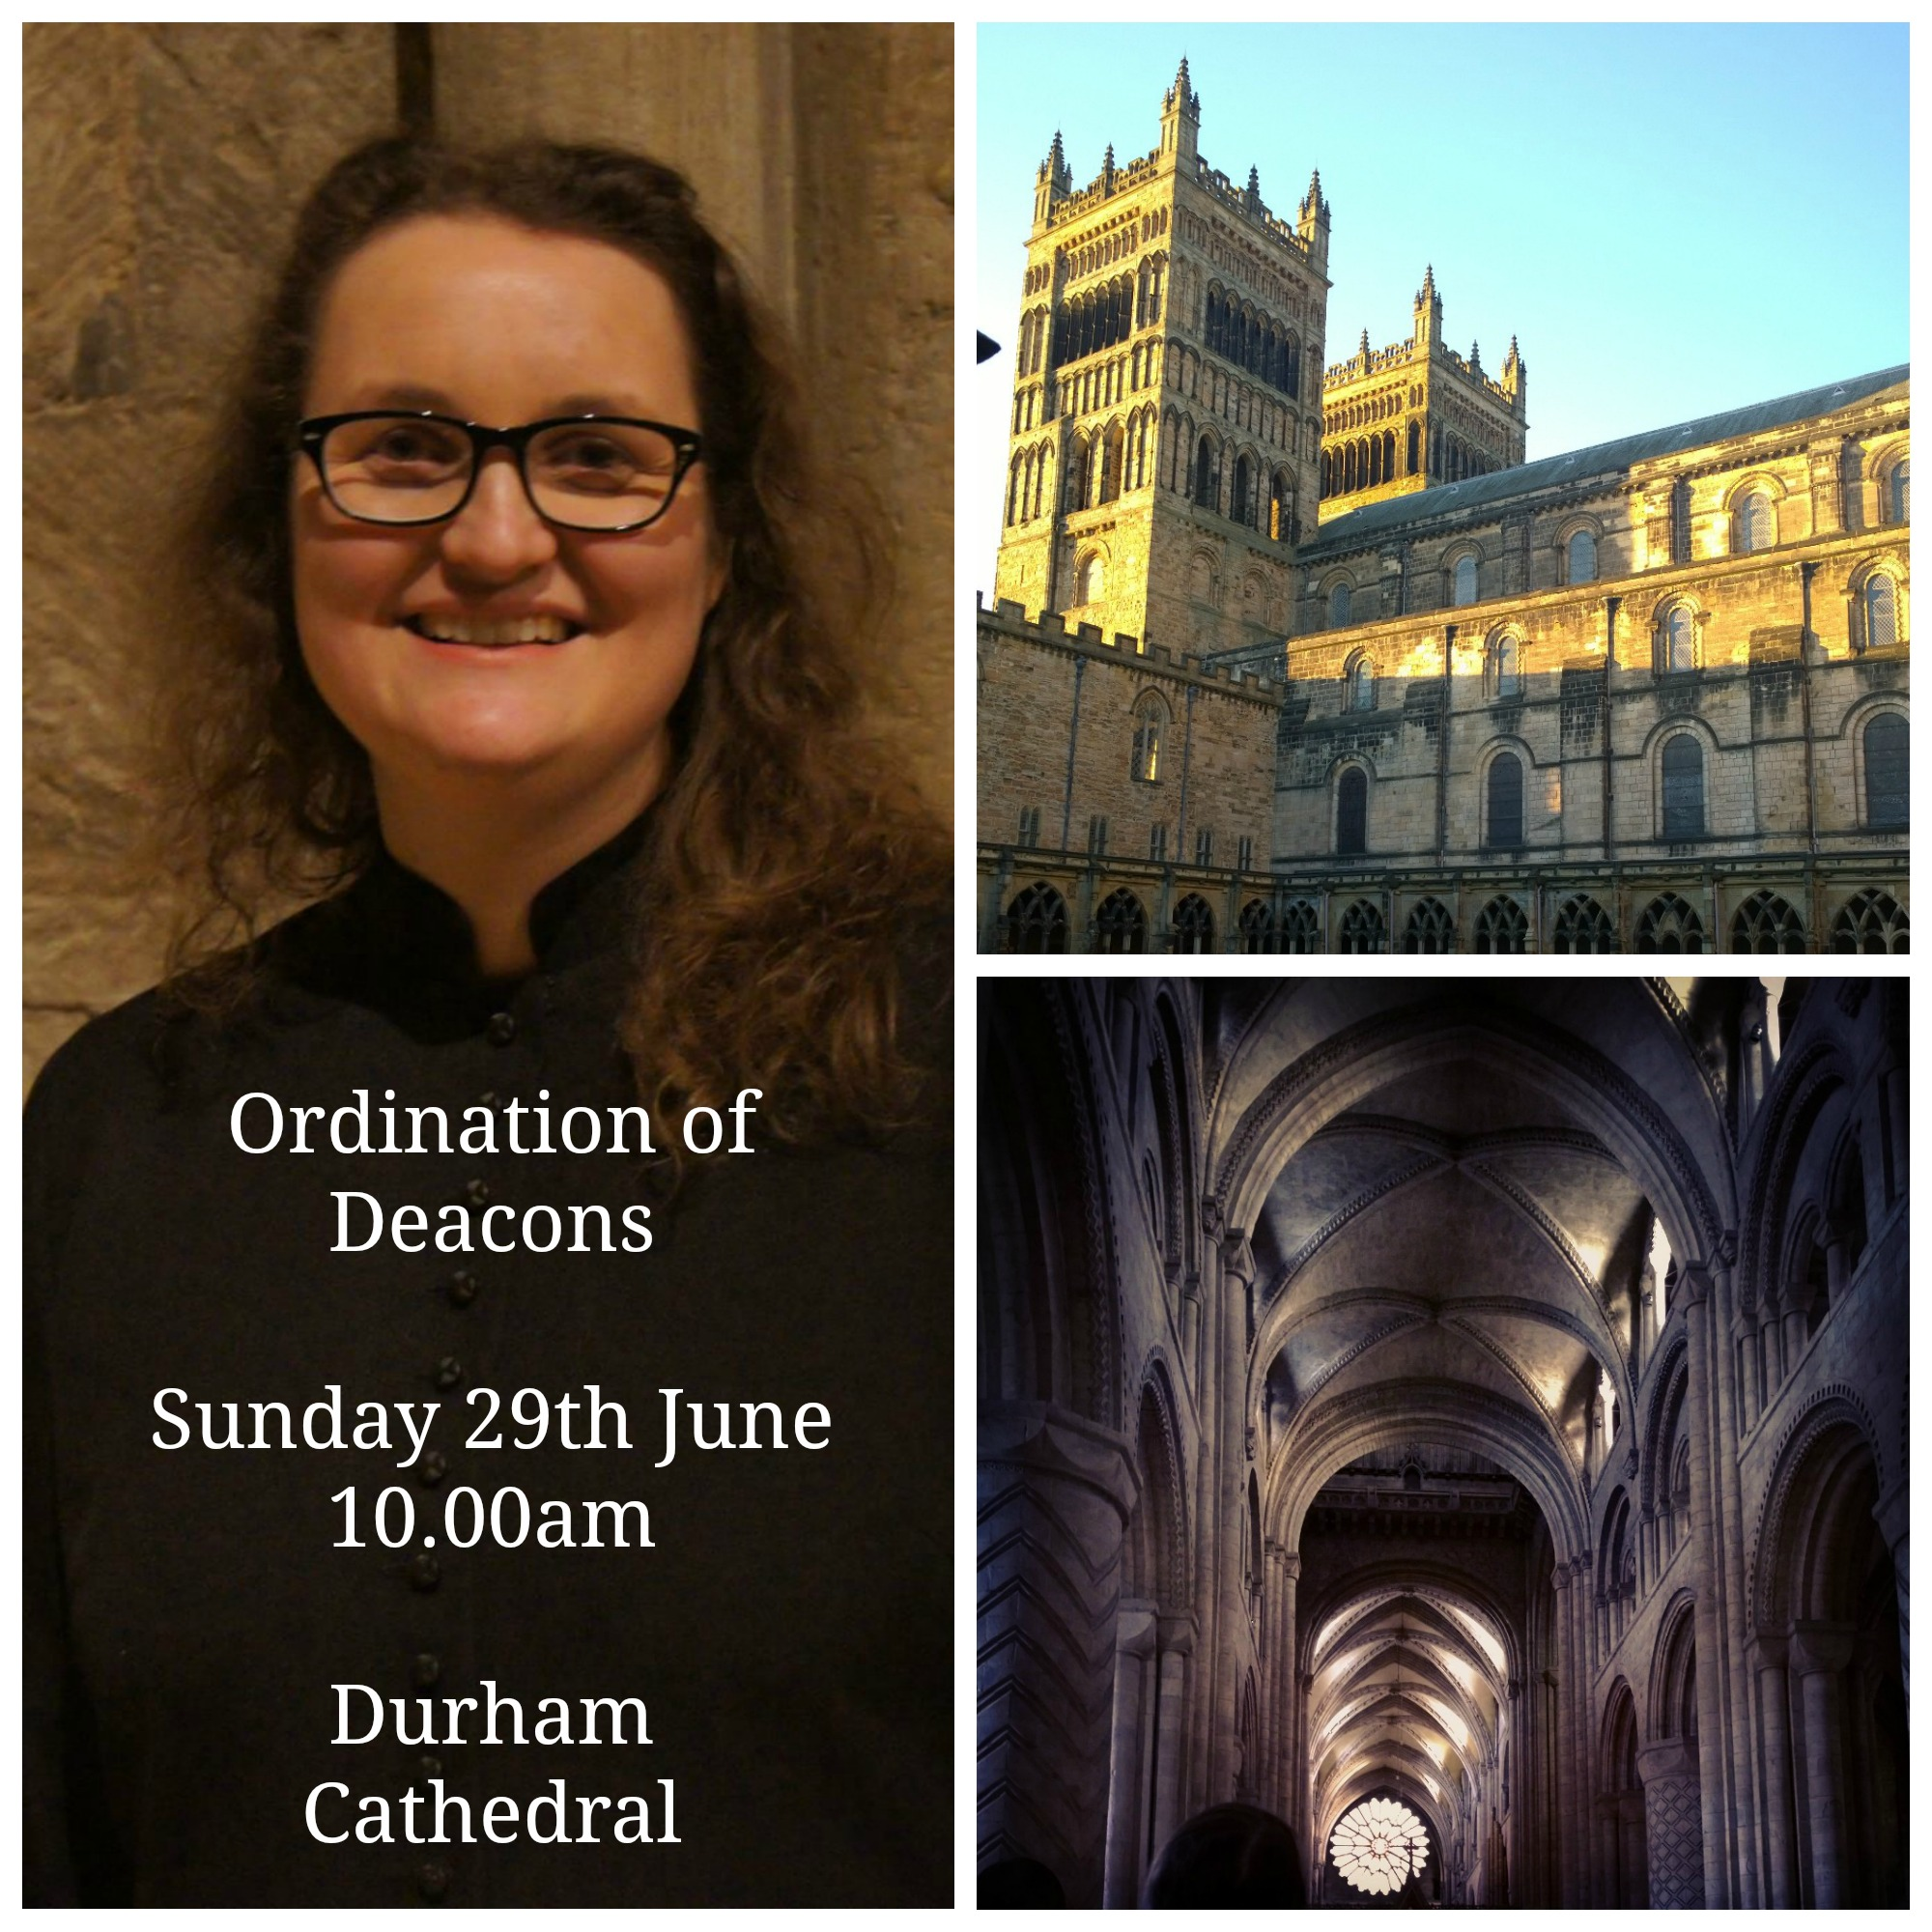 What are ember days and what does being made a deacon mean bryony ordination 2014 wording biocorpaavc Choice Image